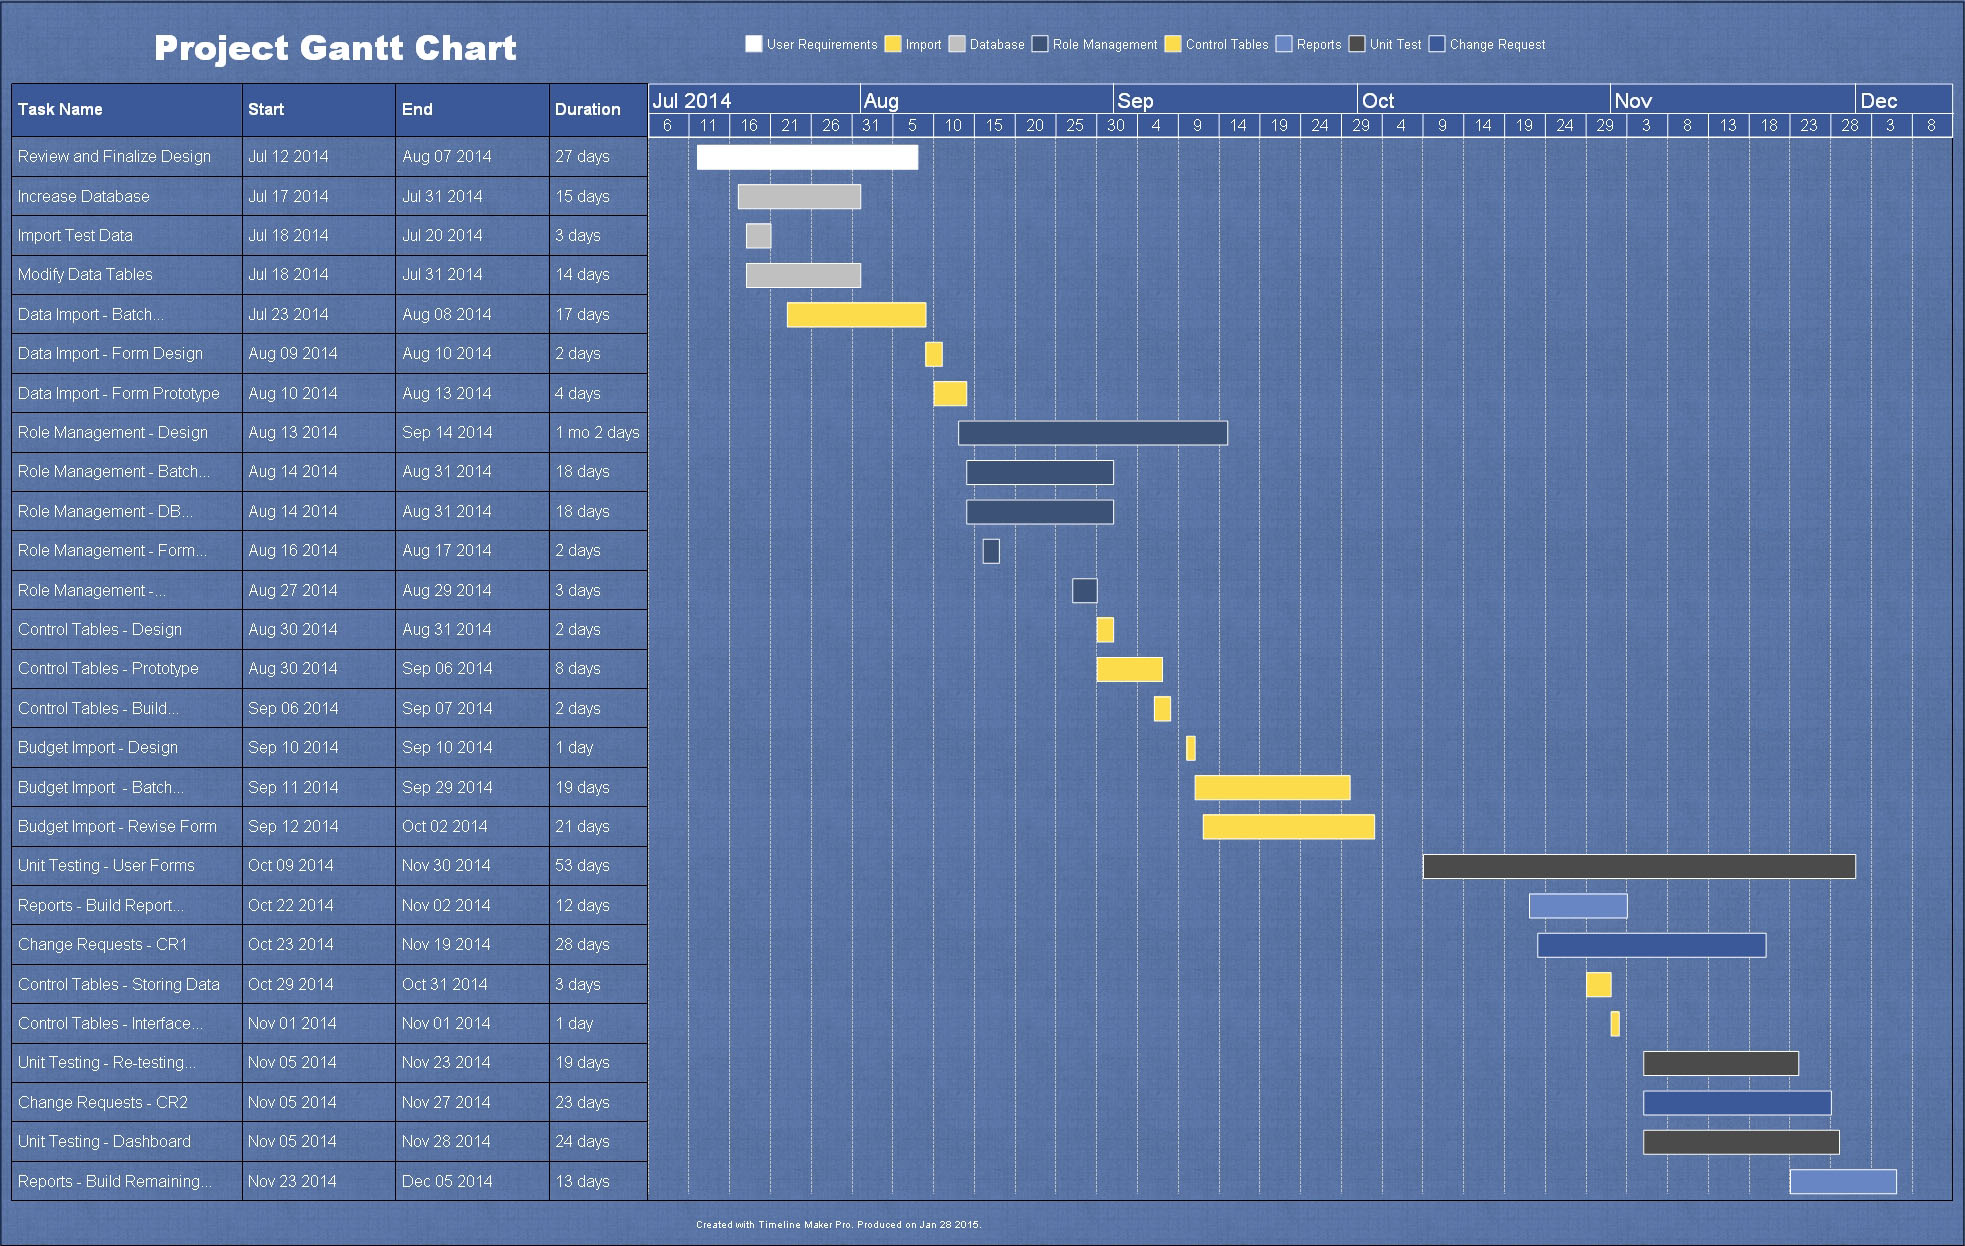 Project plan sample gantt chart created by timeline maker pro project plan gantt chart nvjuhfo Images